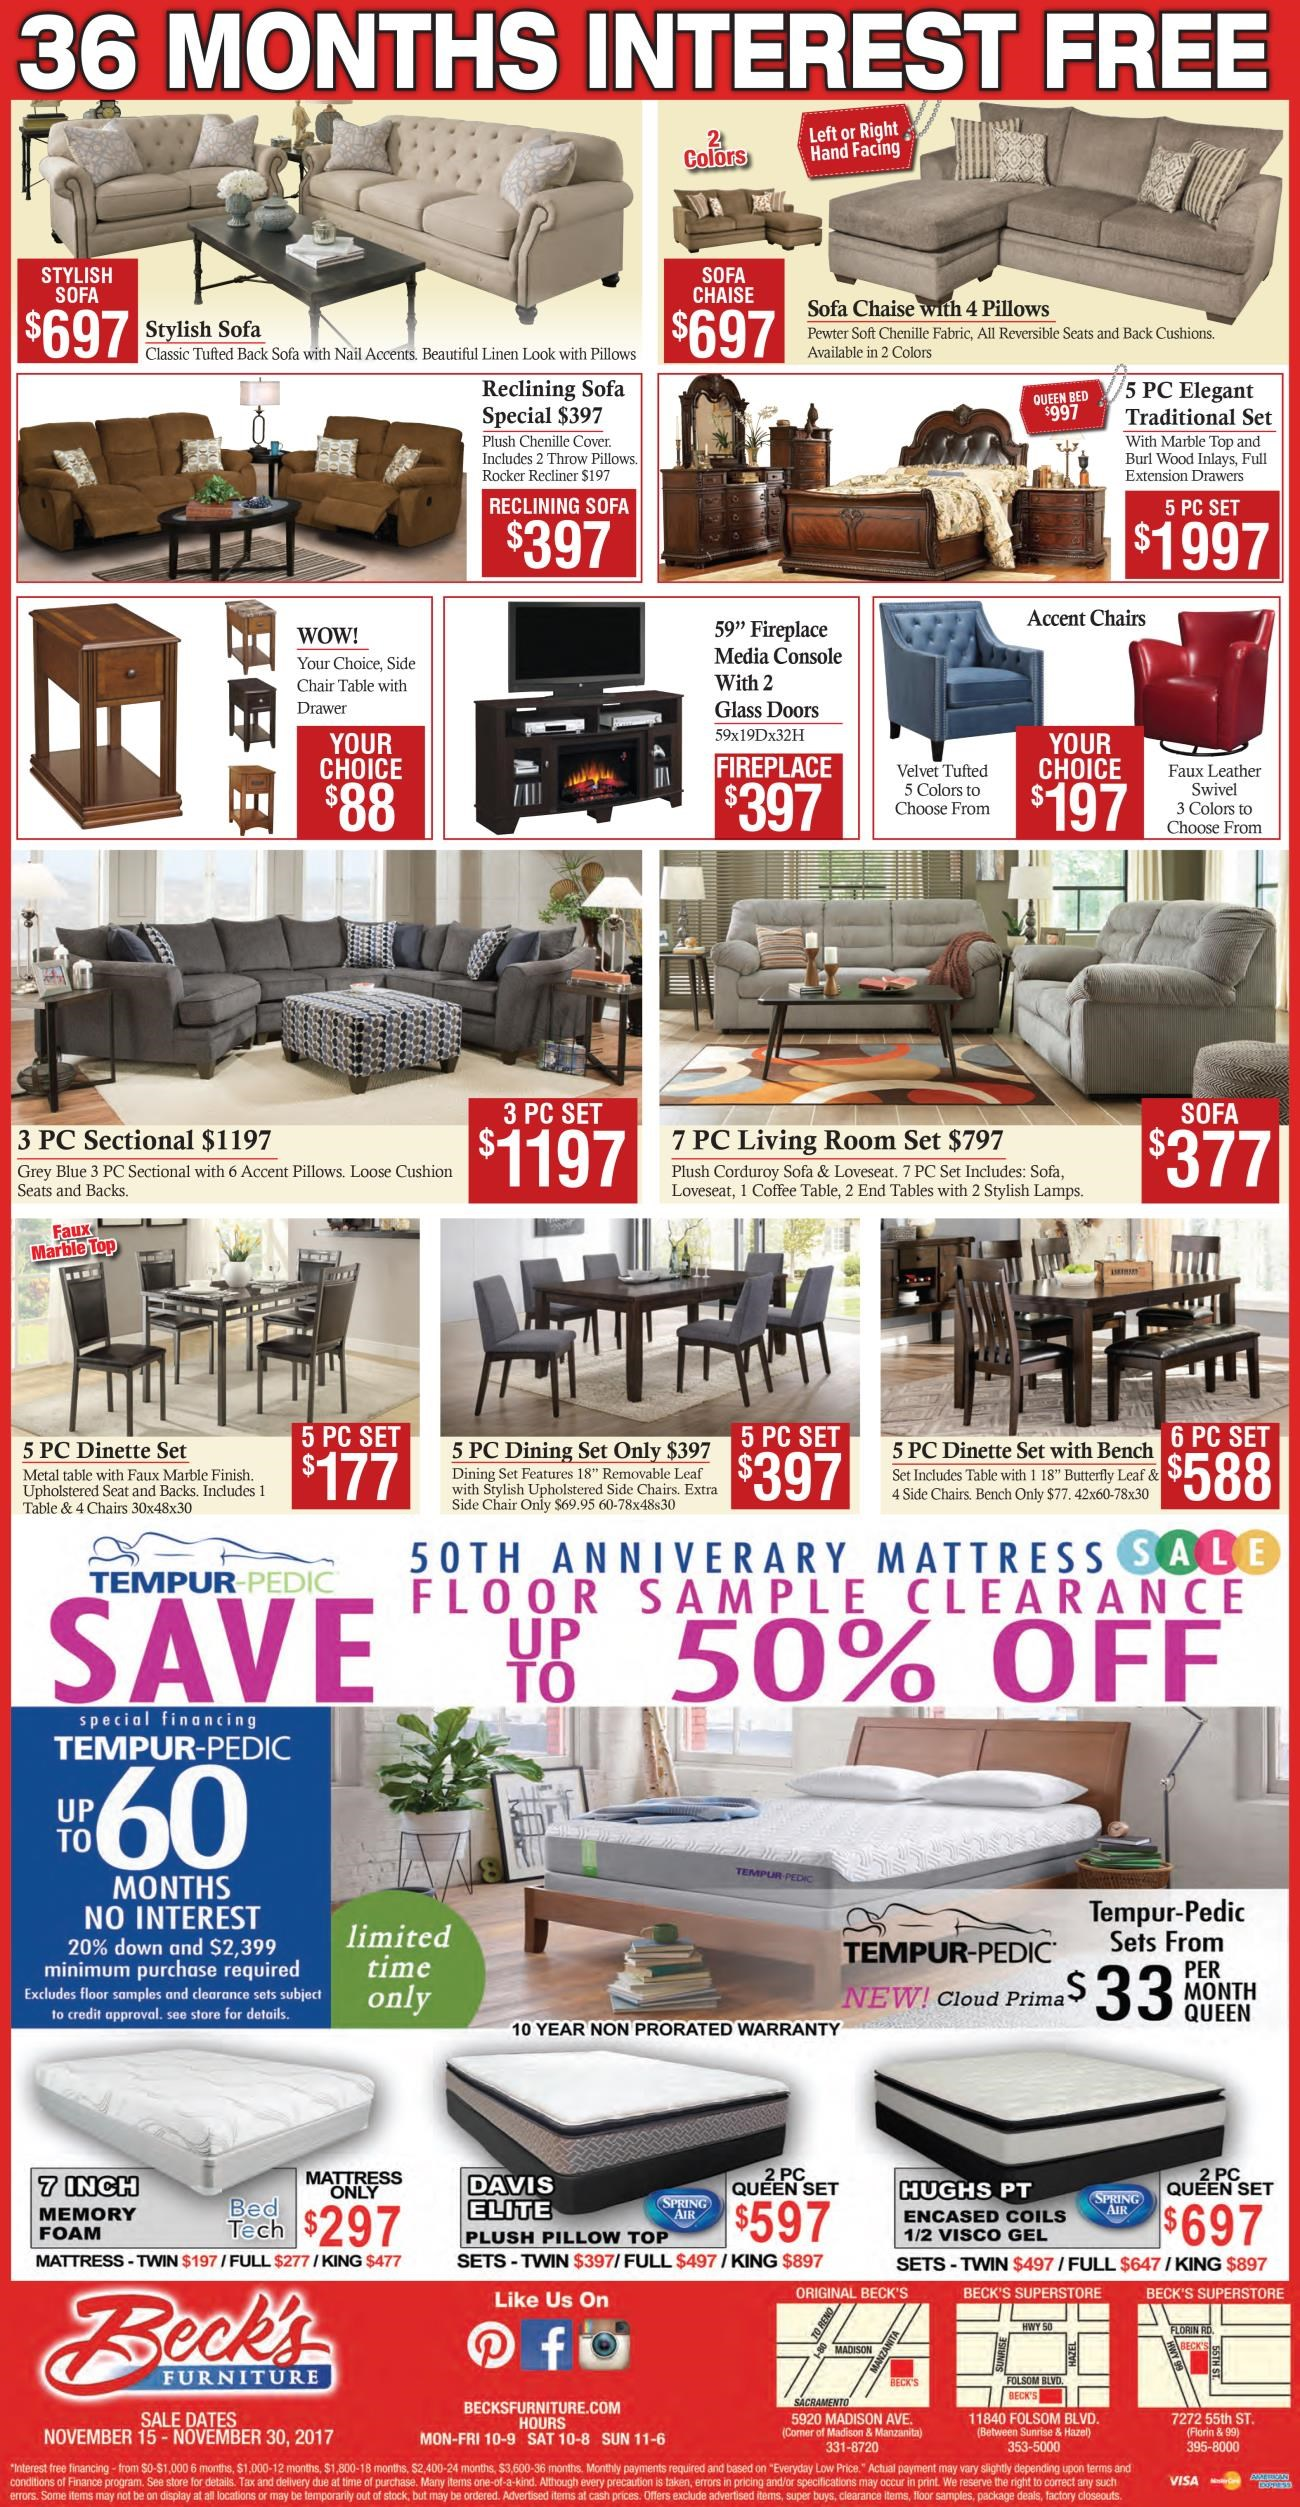 Current Promotions At Becku0027s Furniture: